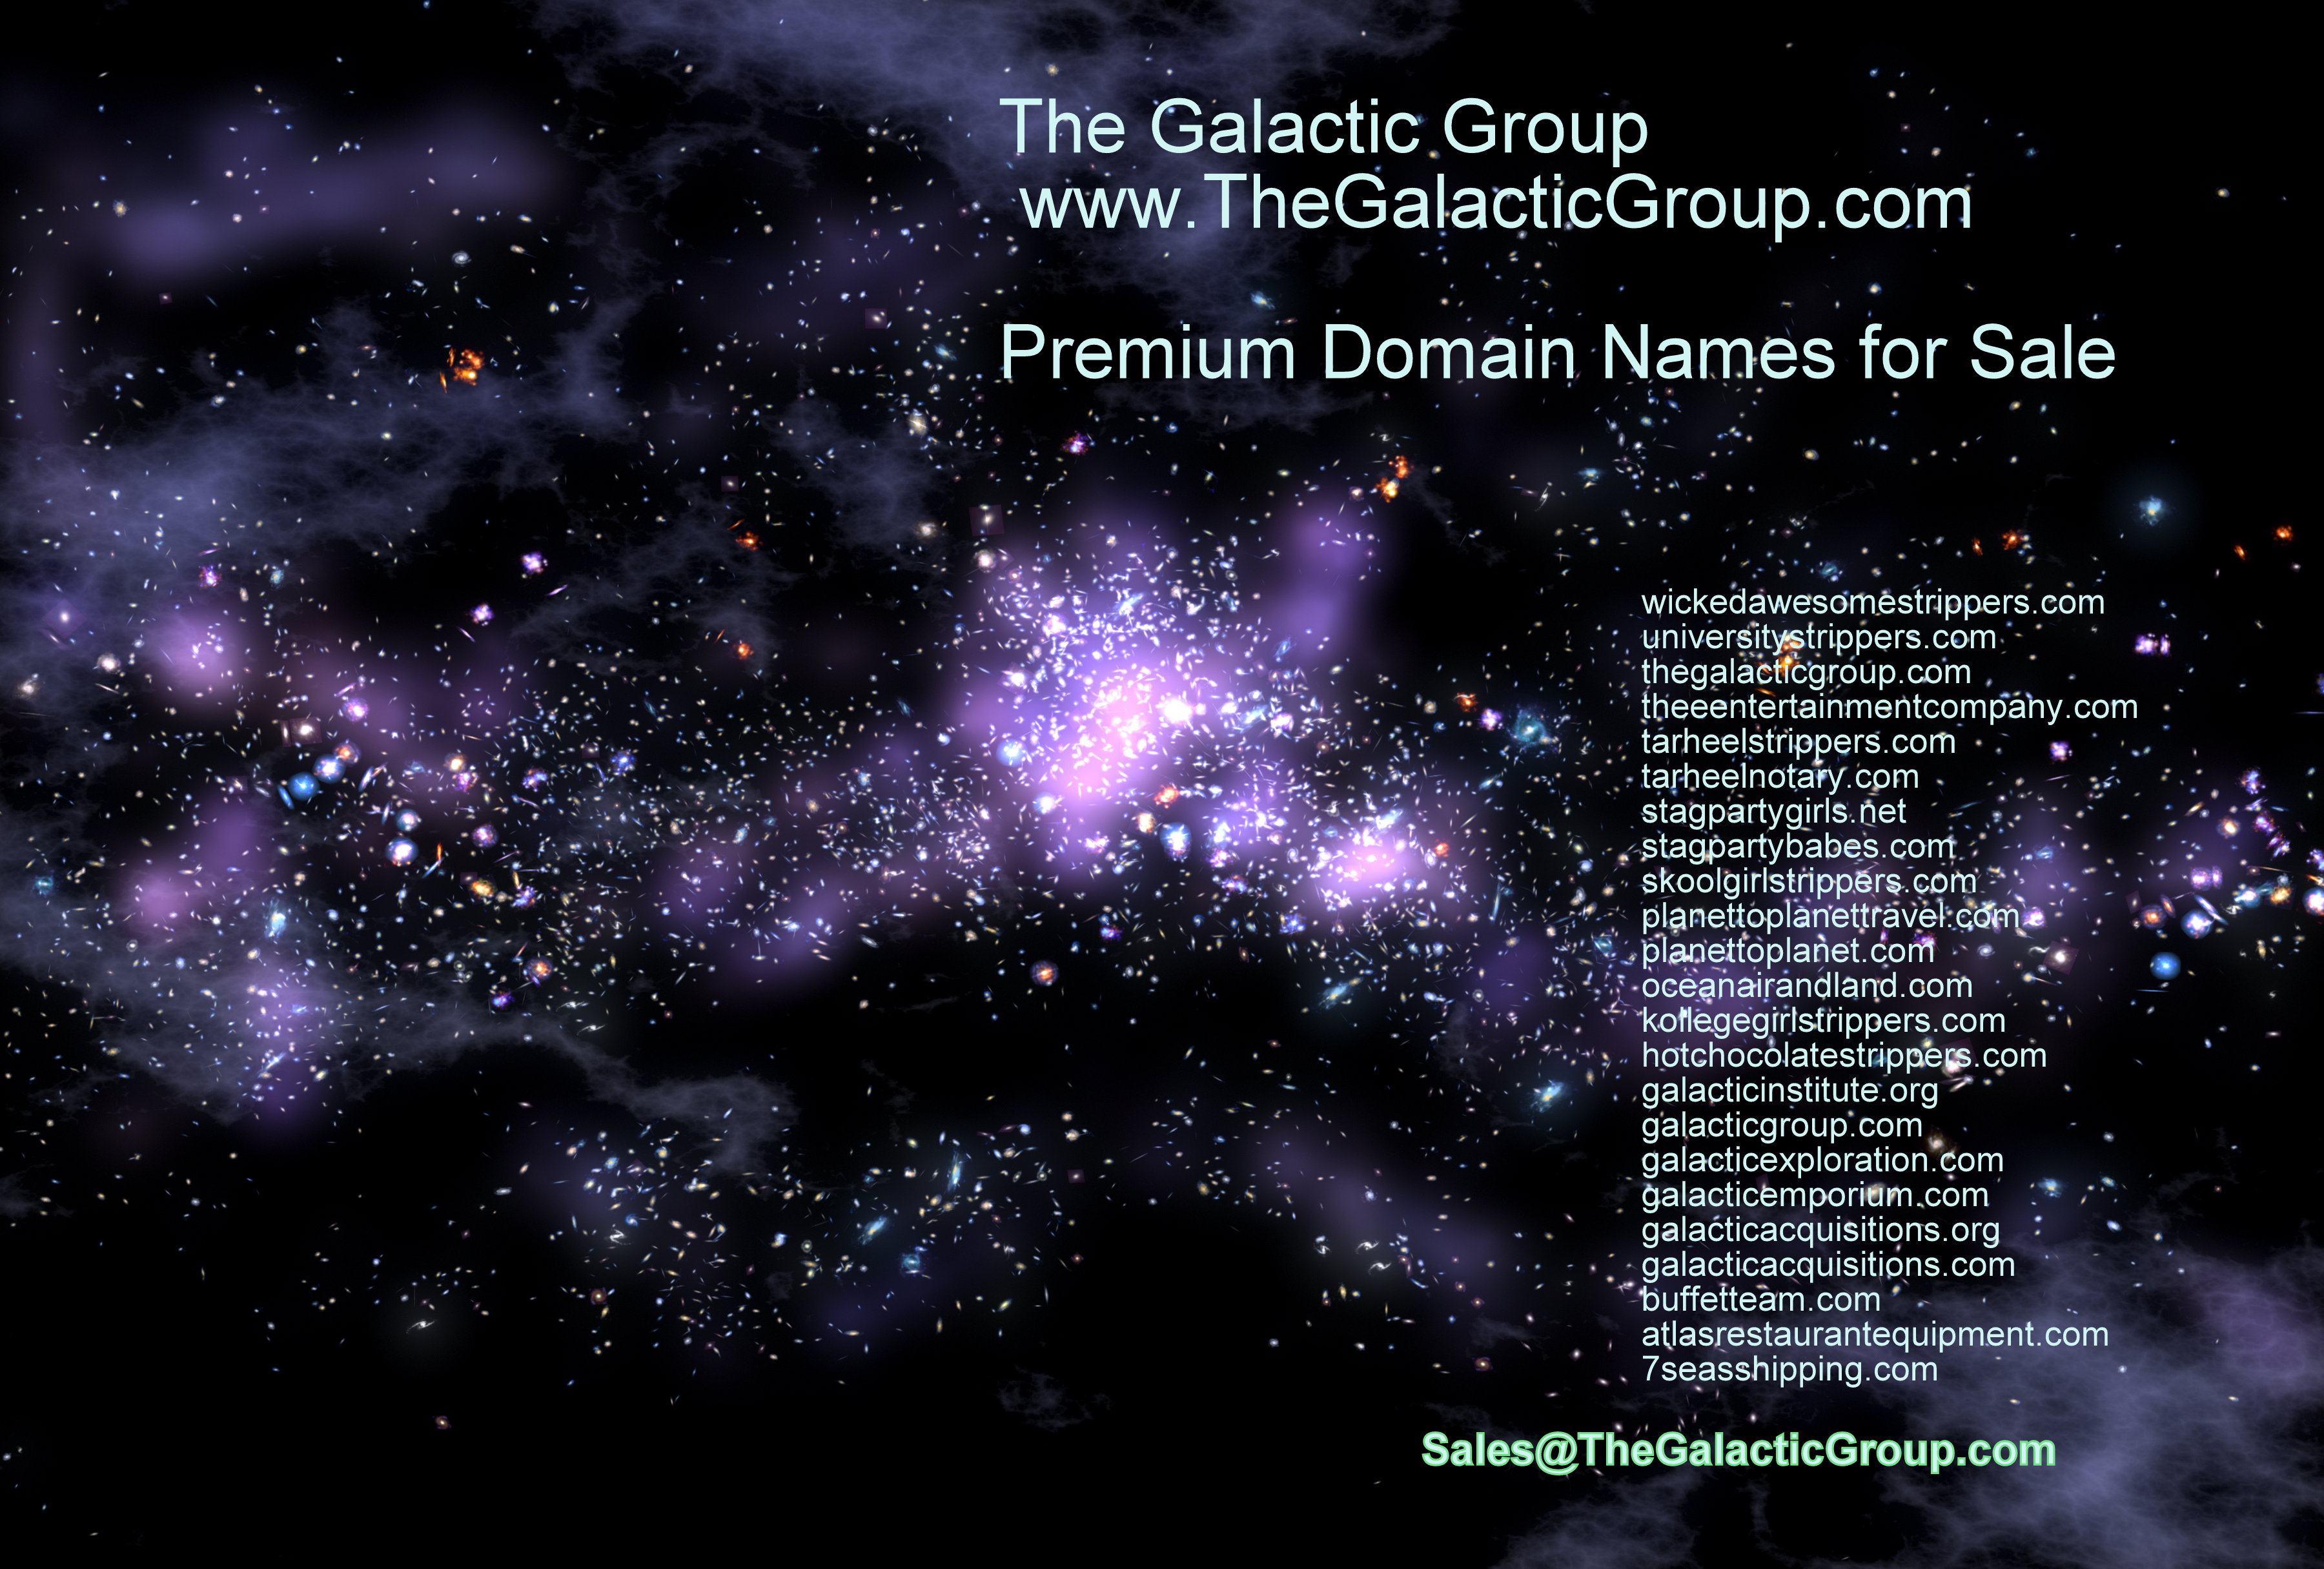 Sales@TheGalacticGroup.com